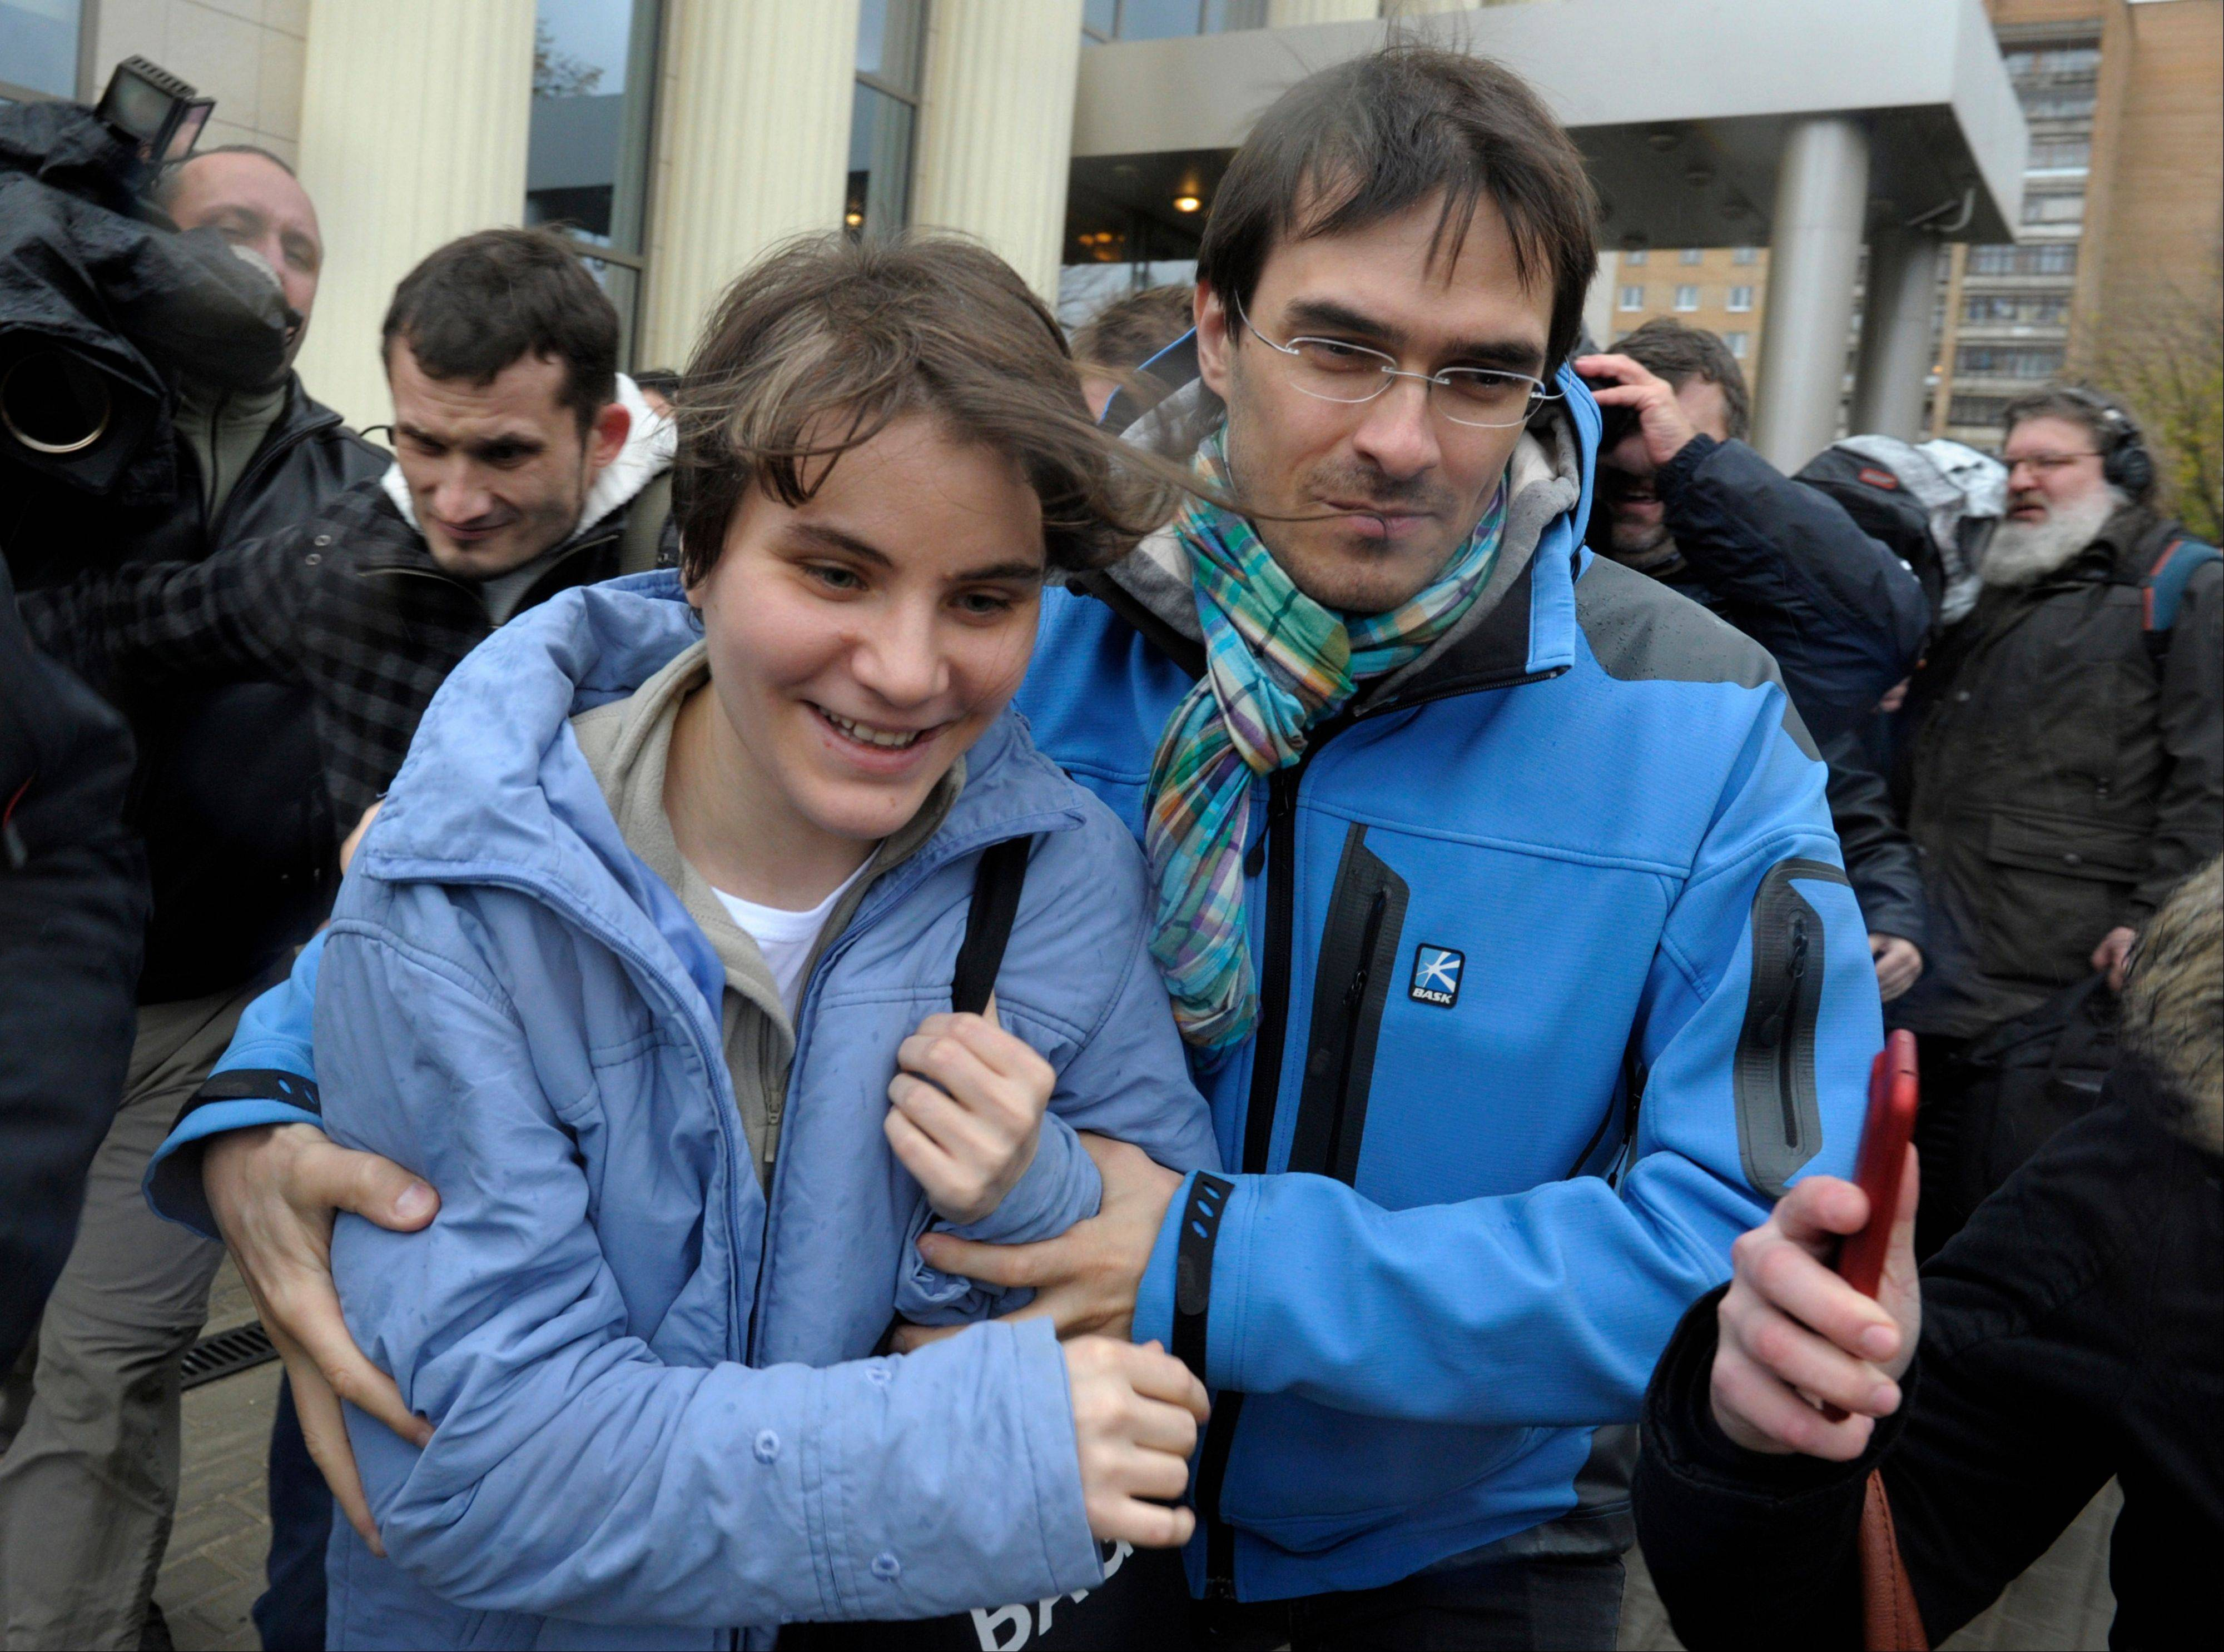 Freed feminist punk group Pussy Riot member Yekaterina Samutsevich, left, leaves a court in Moscow, Wednesday Oct. 10, 2012. A Moscow appeals court on Wednesday unexpectedly freed Yekaterina Samutsevich of the jailed Pussy Riot group, but upheld the two-year prison sentence for the two others jailed for an irreverent protest against President Vladimir Putin.